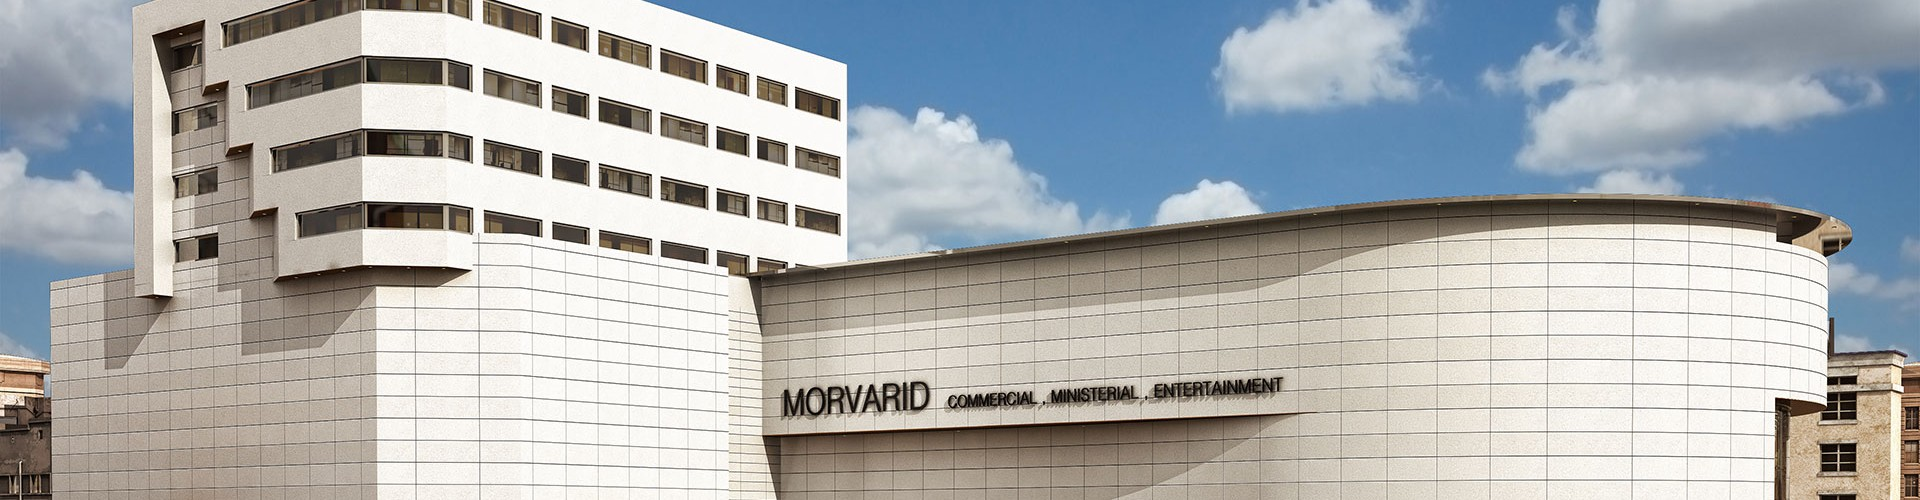 Morvarid commercial and administrative complex